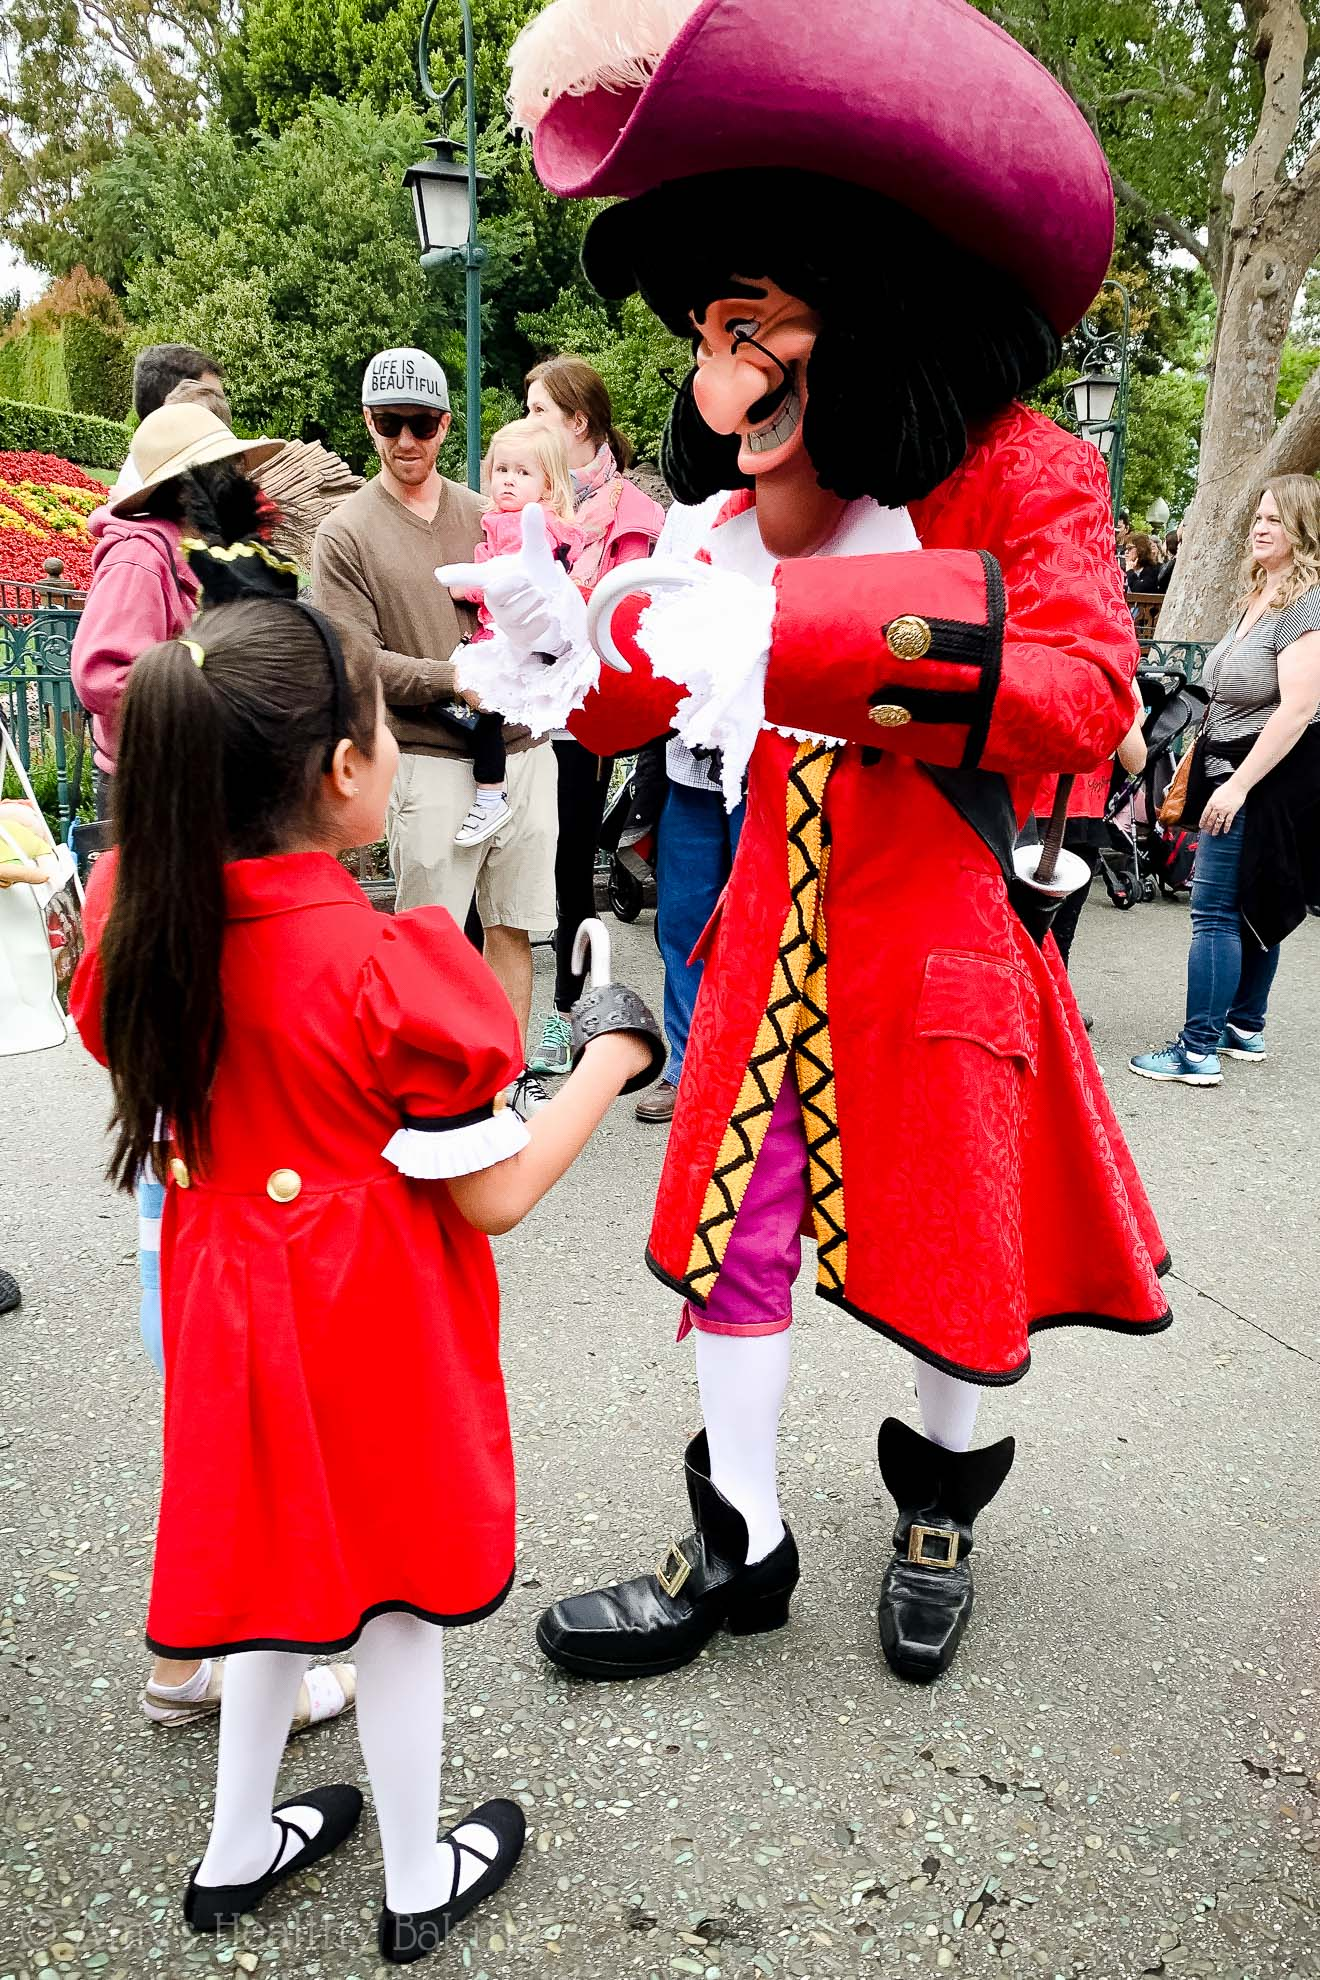 Meeting Captain Hook in Disneyland - Anaheim, California